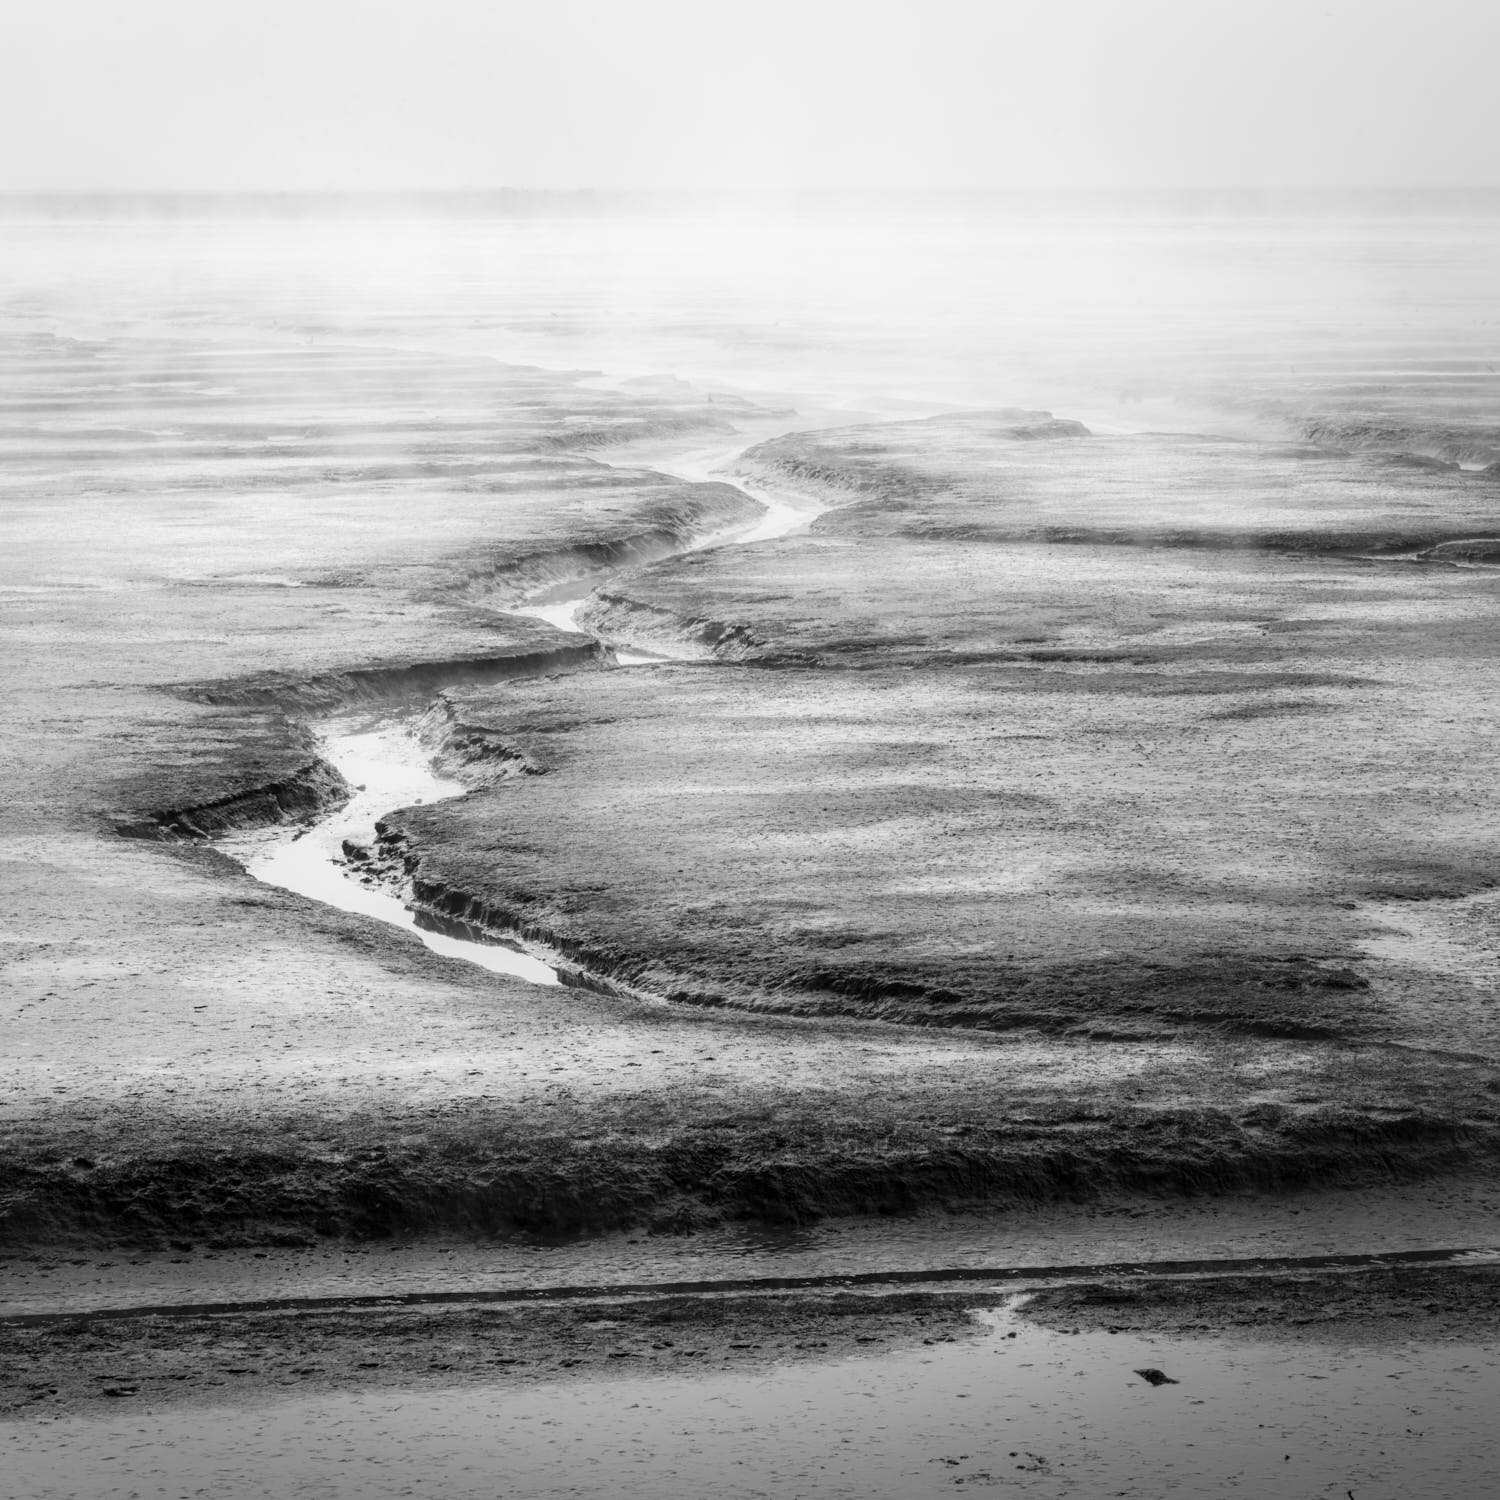 abstract black & white medium format film landscape photograph by Warren Agee